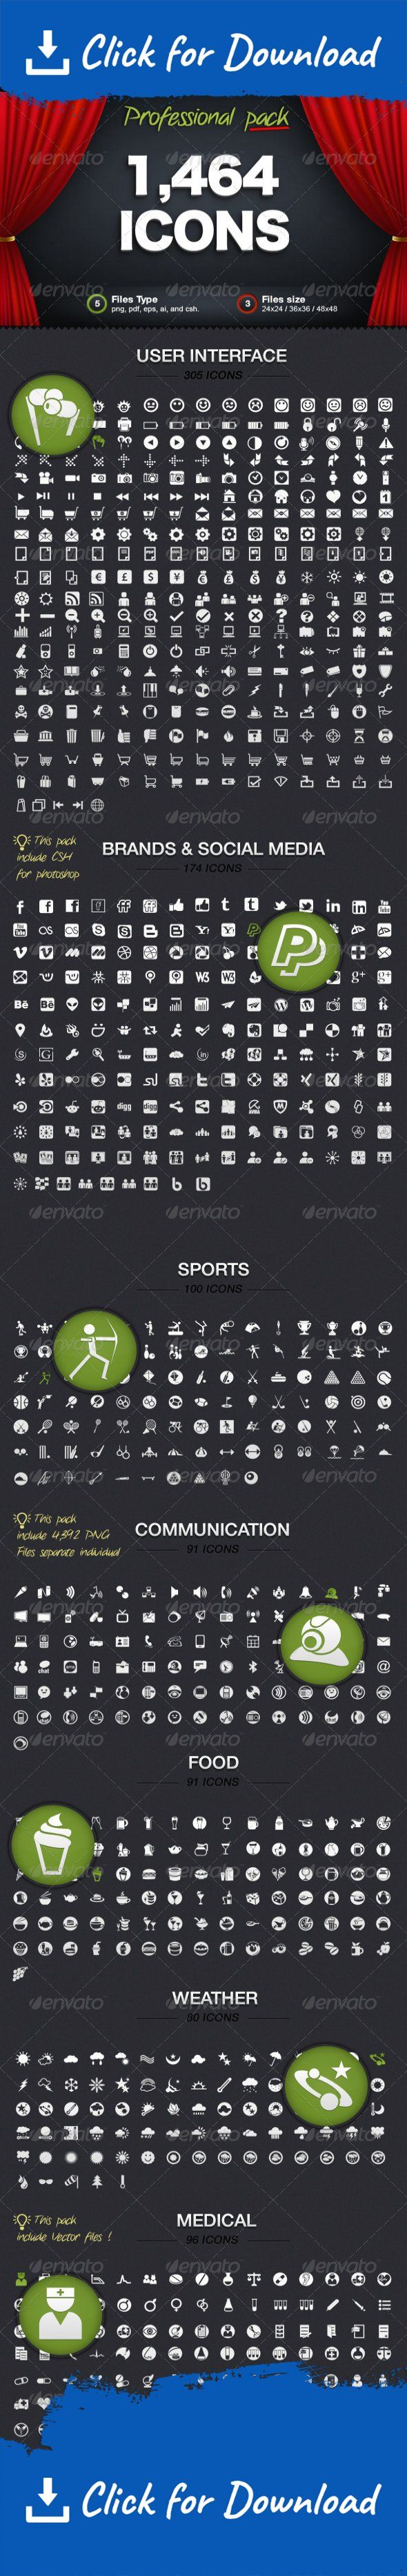 24x24, 36x36, 48x48, app, bundle, business, fully editable, glyph, glyphs icon, icon set, icons, illustrator, interface, mobile, photoshop, pictogram, pixel, pixel perfect, set icons, shape, shapes, smart object, symbol, symbols, ui, vector, web 4,392 icons by 3 different sizes, ranging from 24×24 / 36×36 / 48×48 pixels. High quality standard and this special for designer.